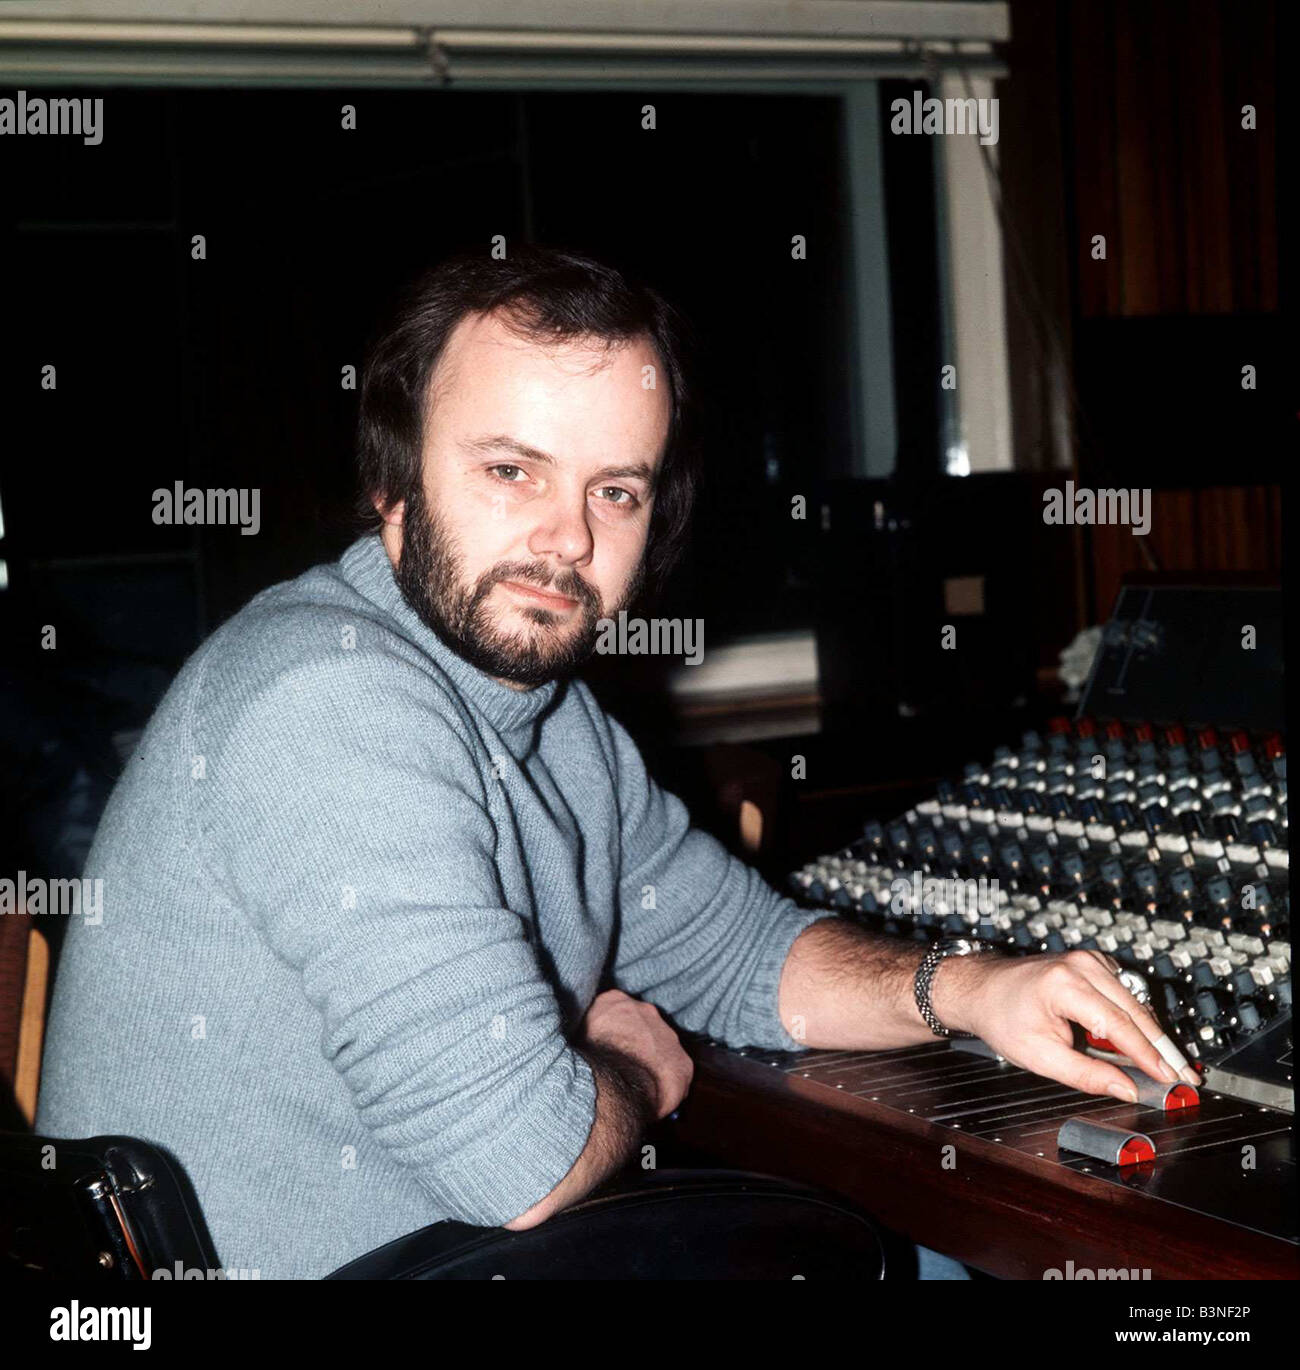 DJ John Peel in radio one studio sitting by mixing desk 1976 John Peel BBC Radio 1 s longest serving DJ mirrorpix - Stock Image